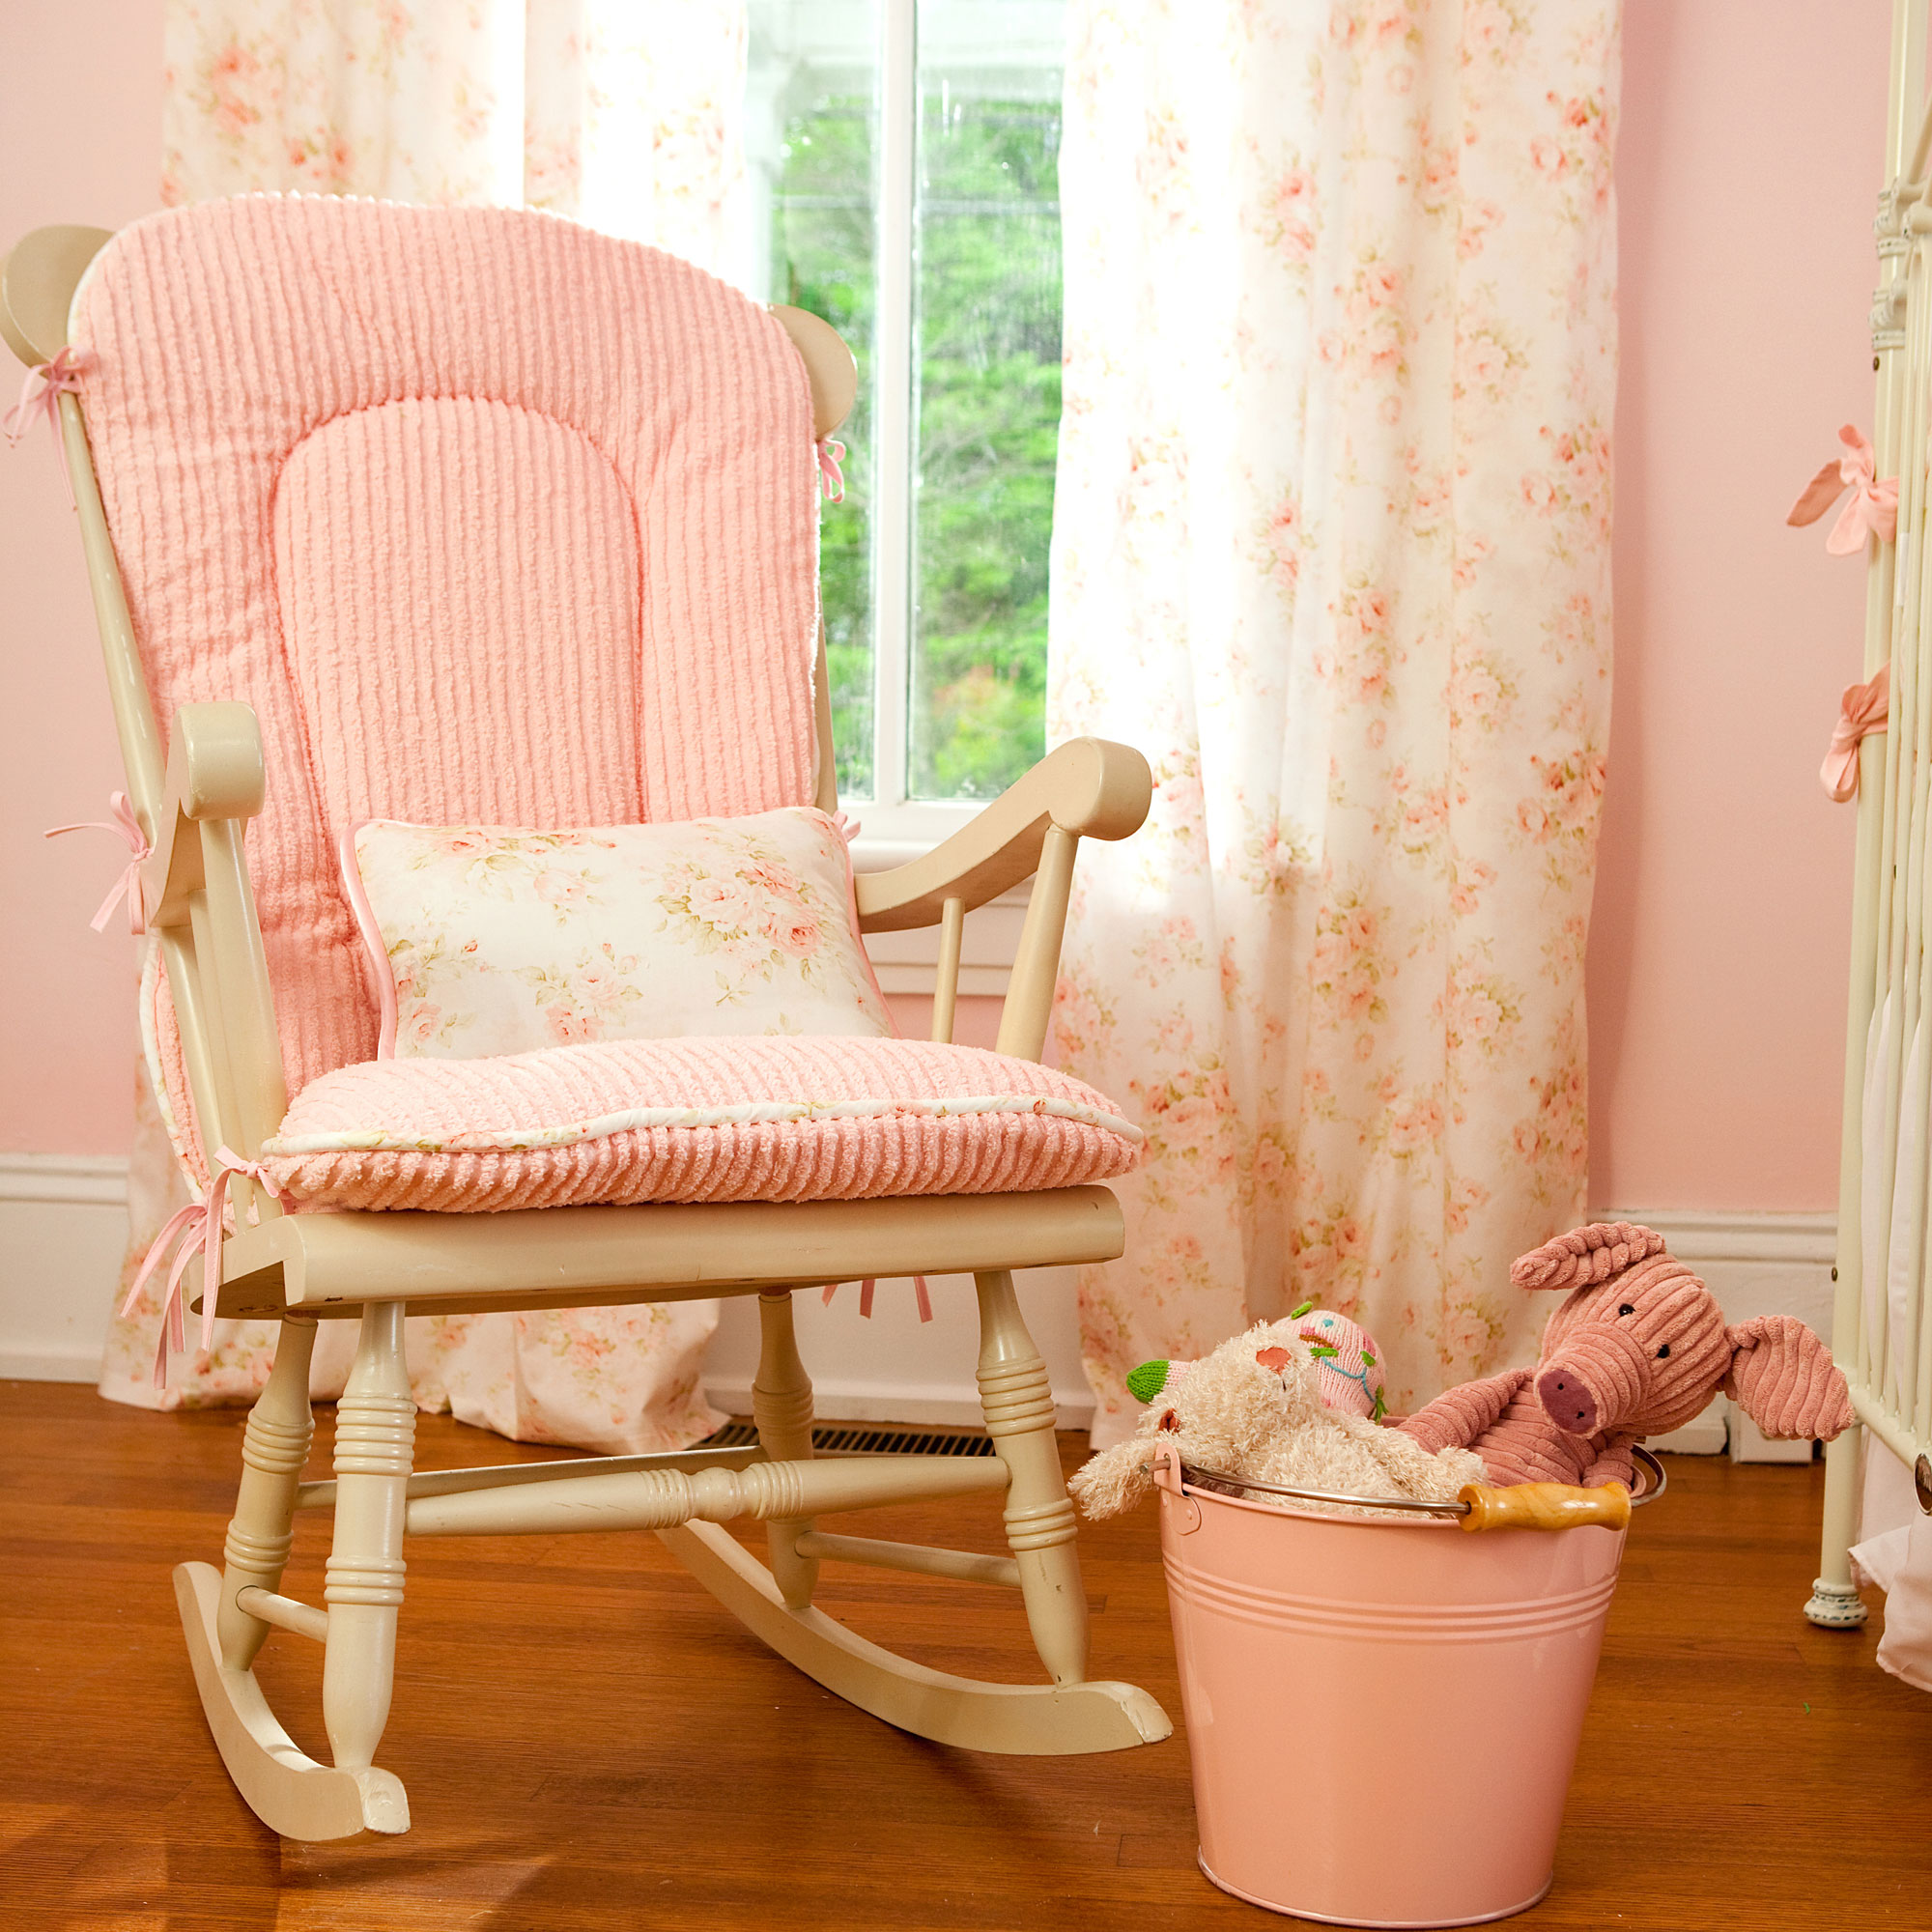 rocking chair for nursery wedding covers galway how to decorate babies and moms heaven interior design